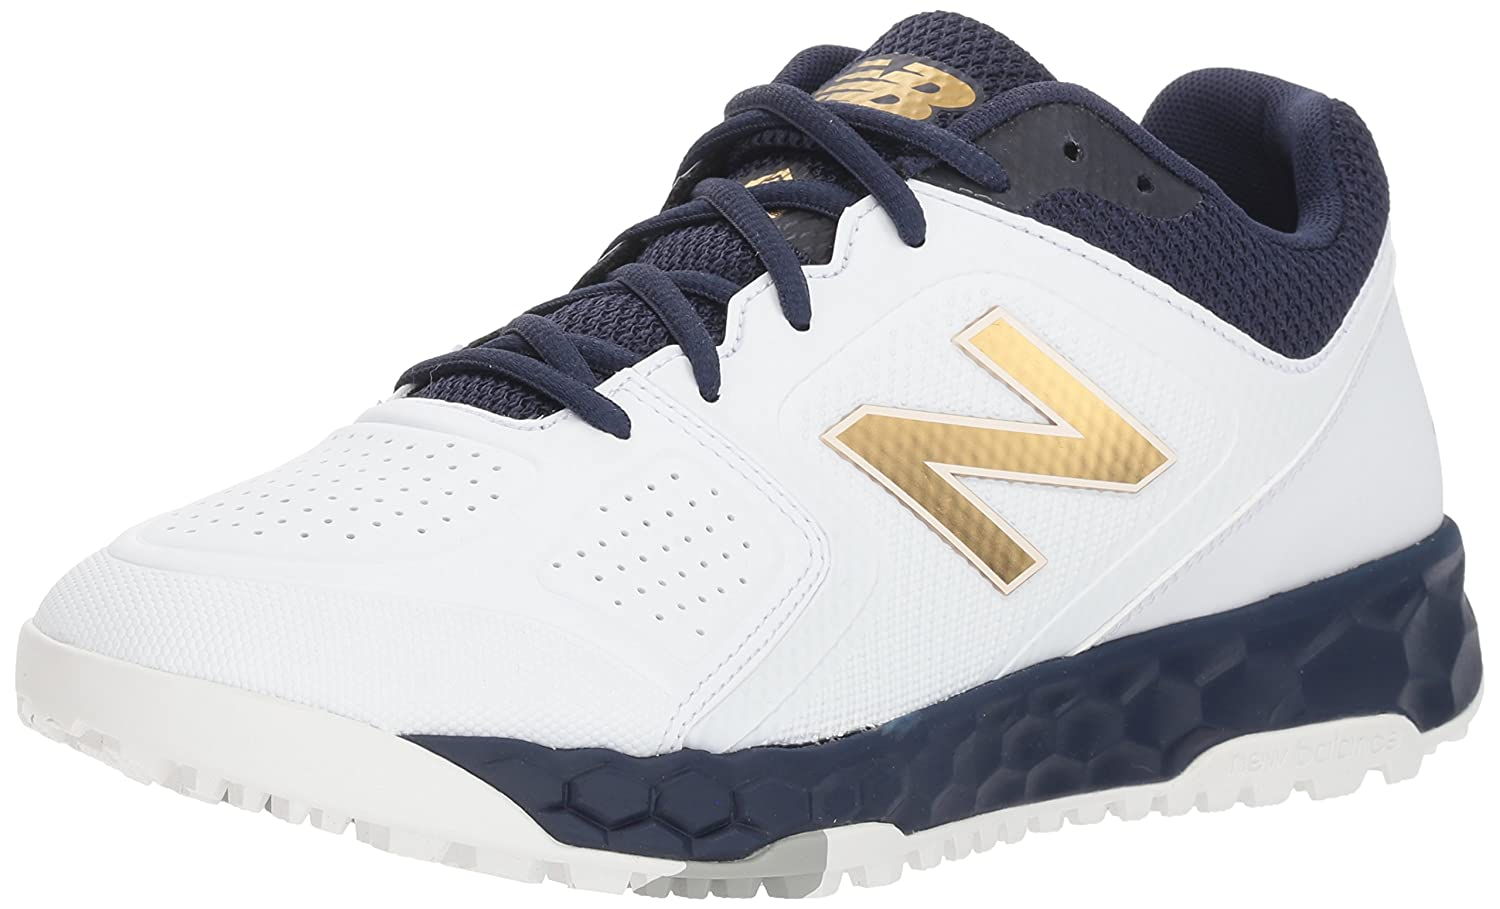 New Balance Women's Velo V1 Turf Softball Shoe B075R726QR 7 B(M) US|Navy/White